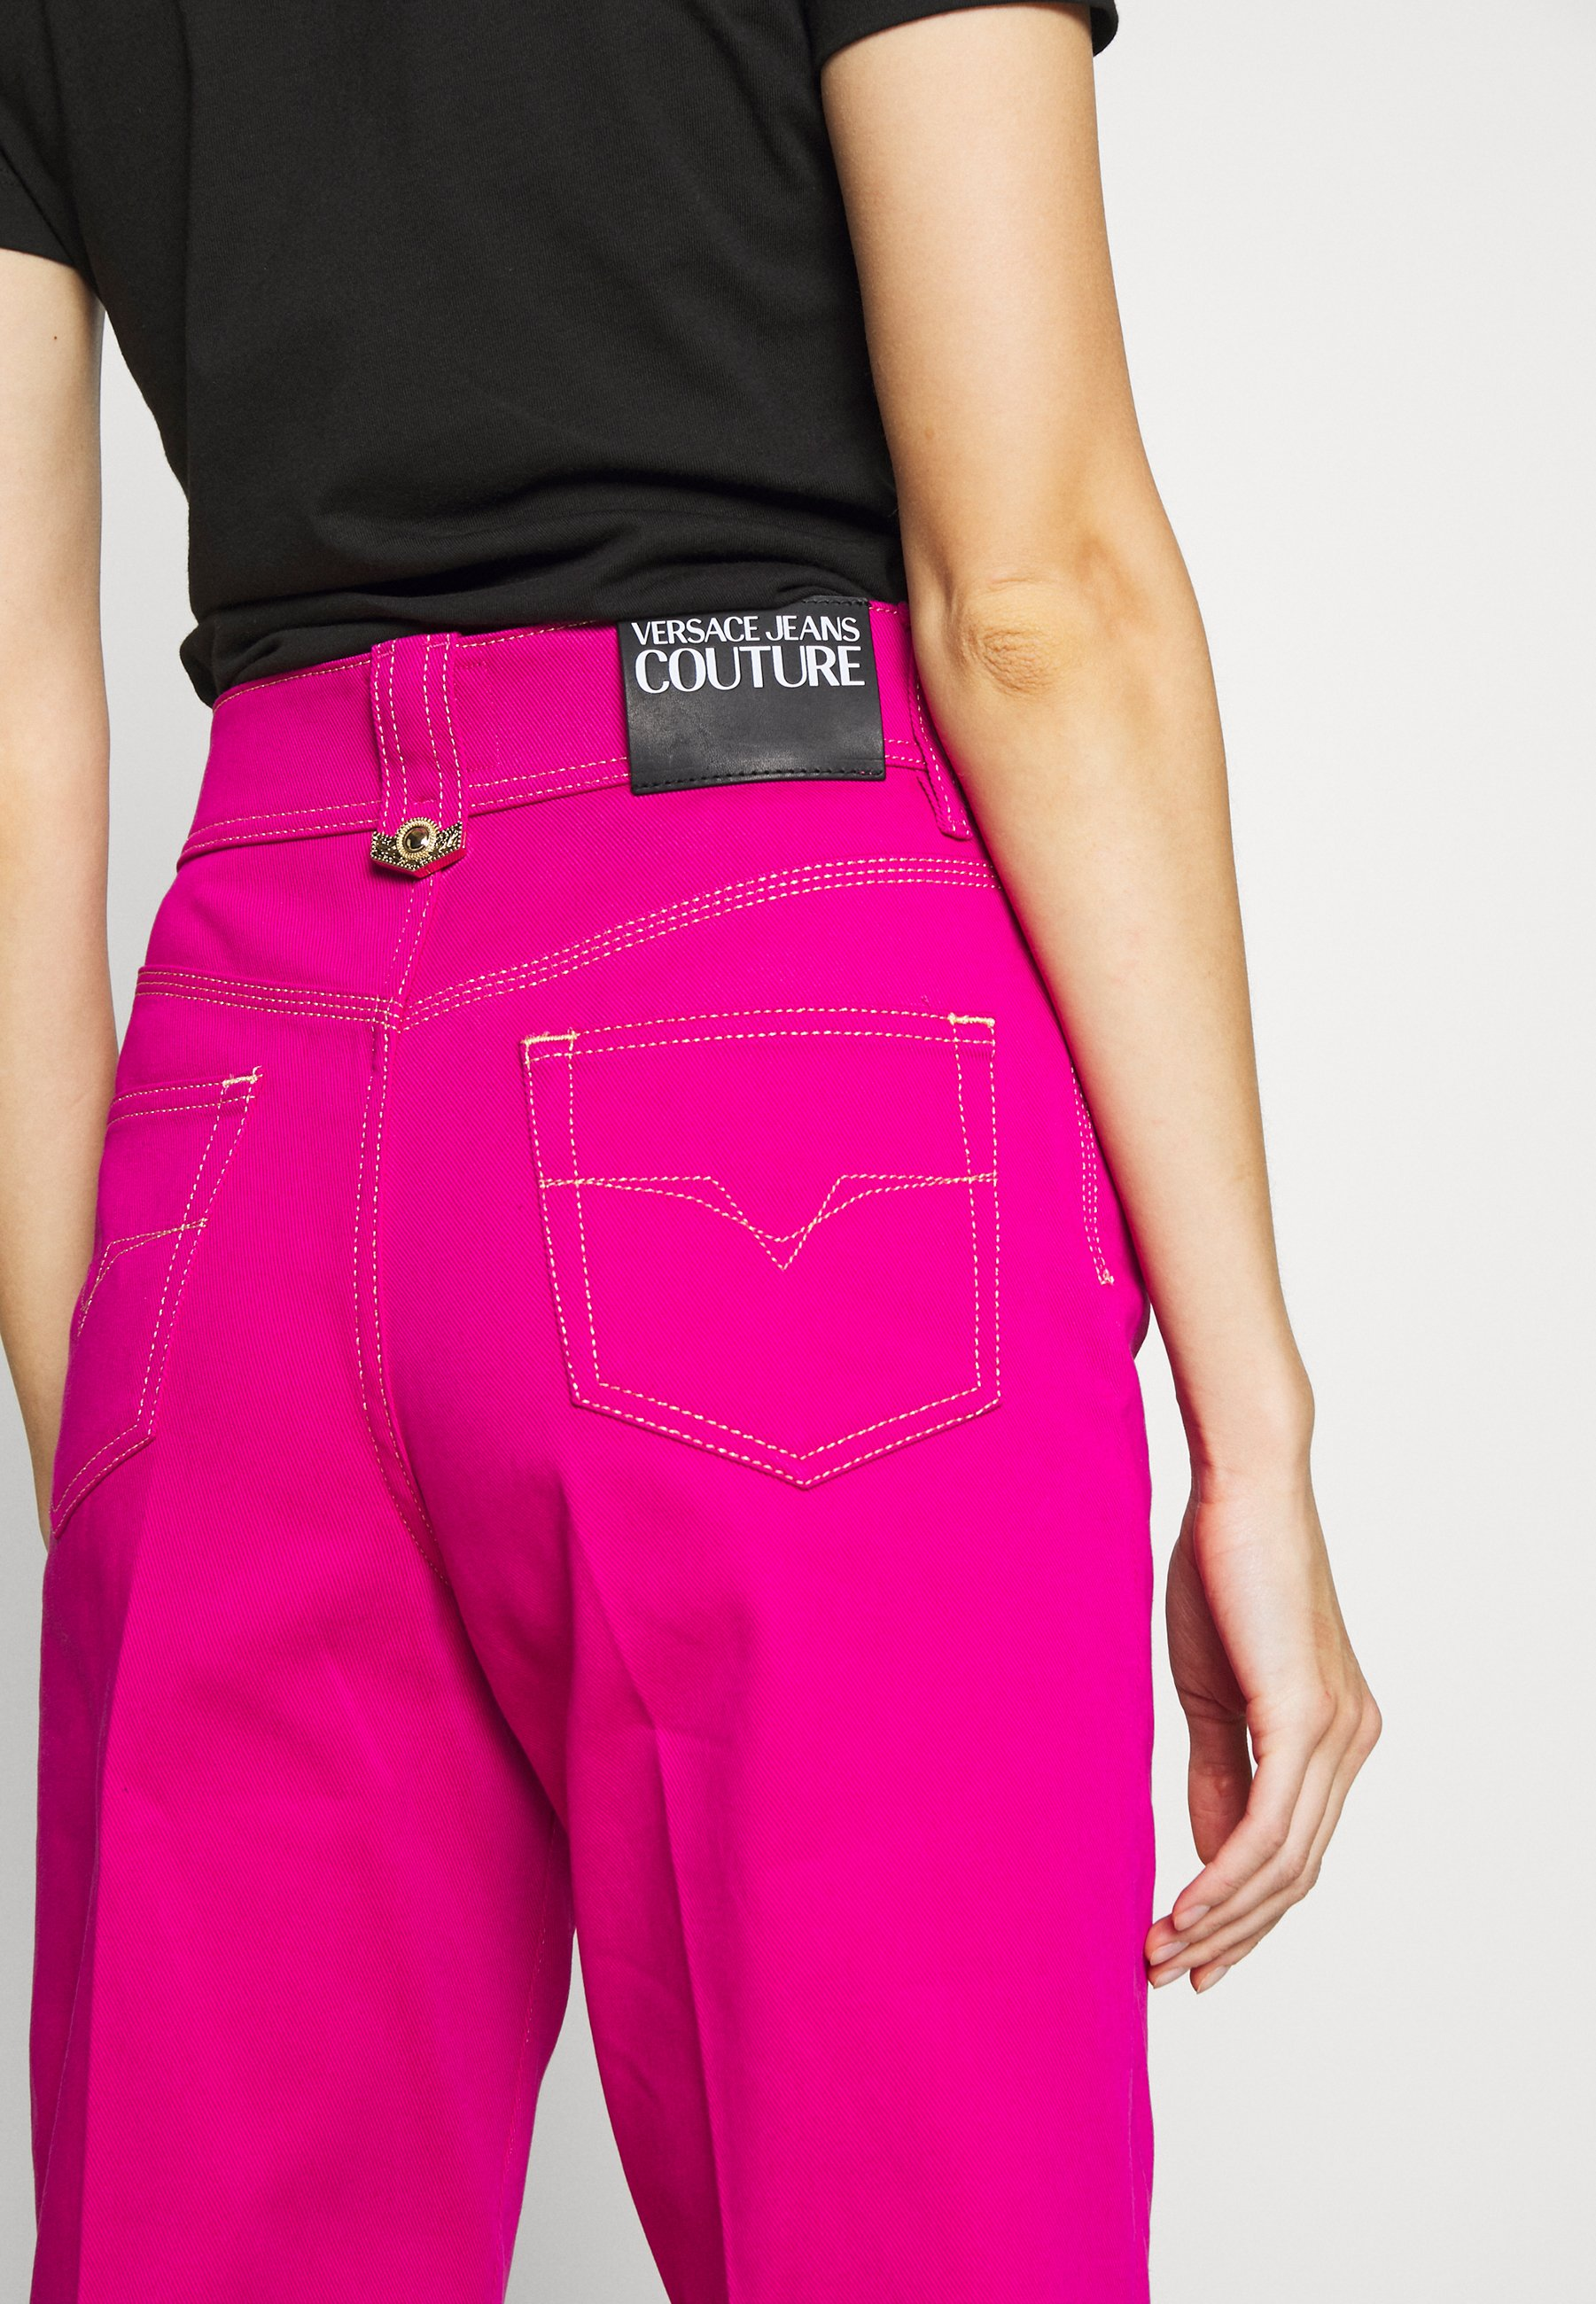 BLUE Branded jeans  Versace Jeans Couture  Straight